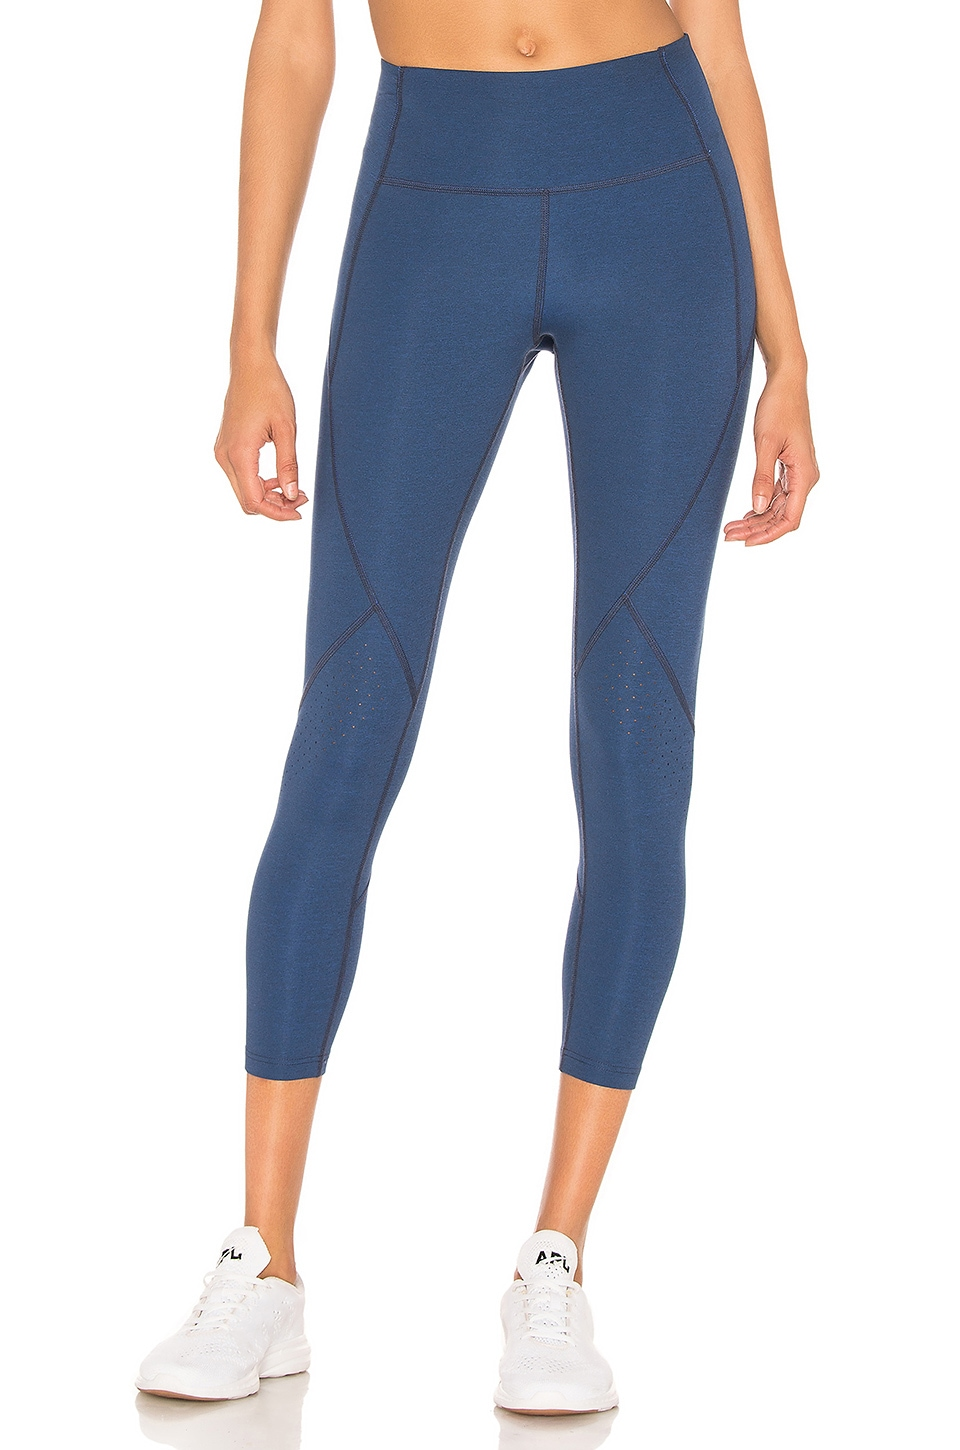 LNDR Scuba Ultra Form Legging in Cobalt Marl